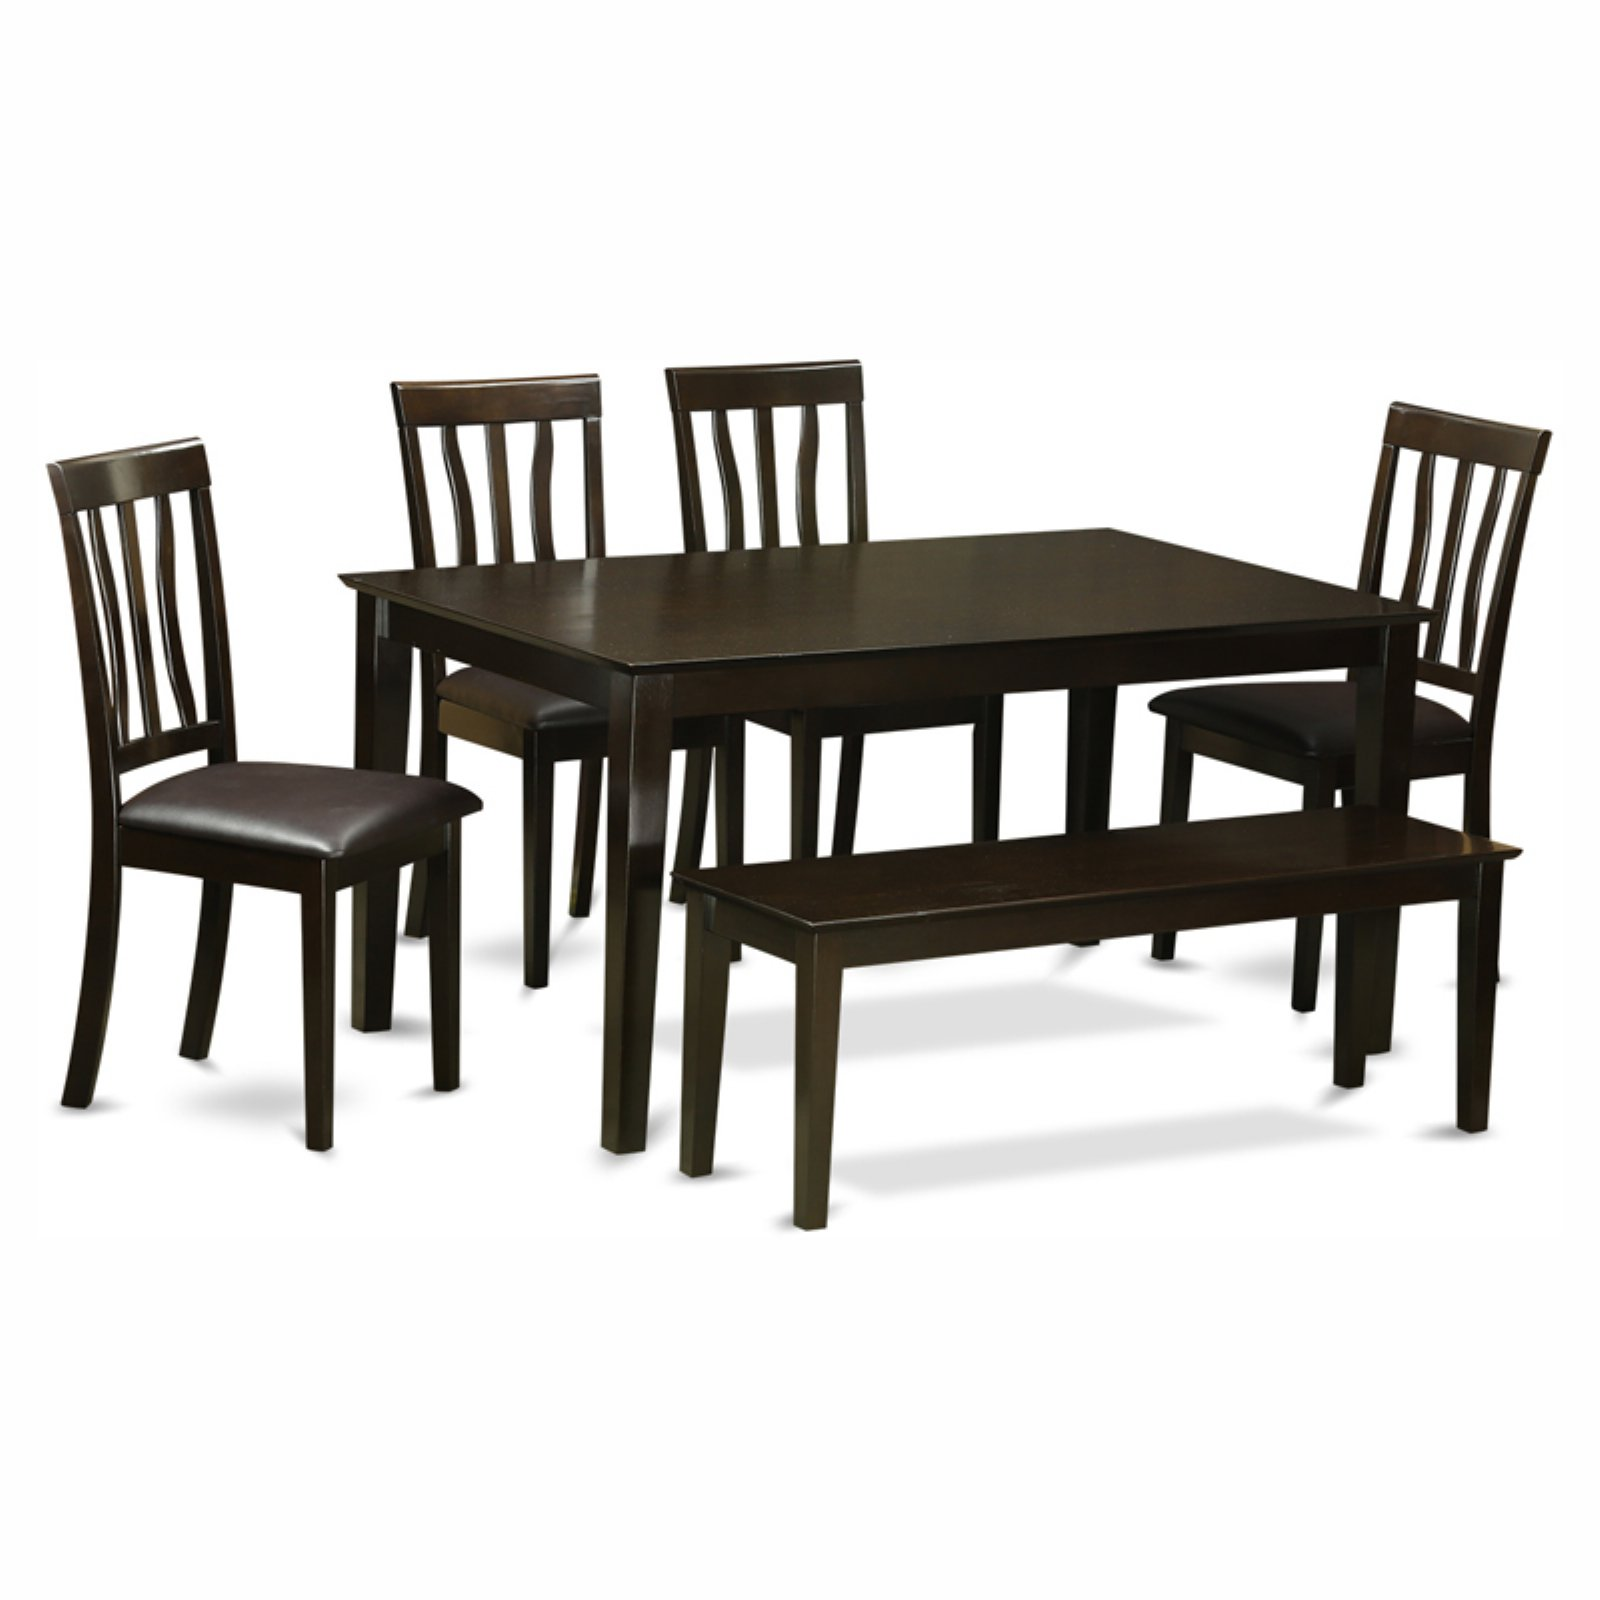 East West Furniture Capris 6 Piece Rectangular Dining Table Set with Antique Faux Leather Seat Chairs